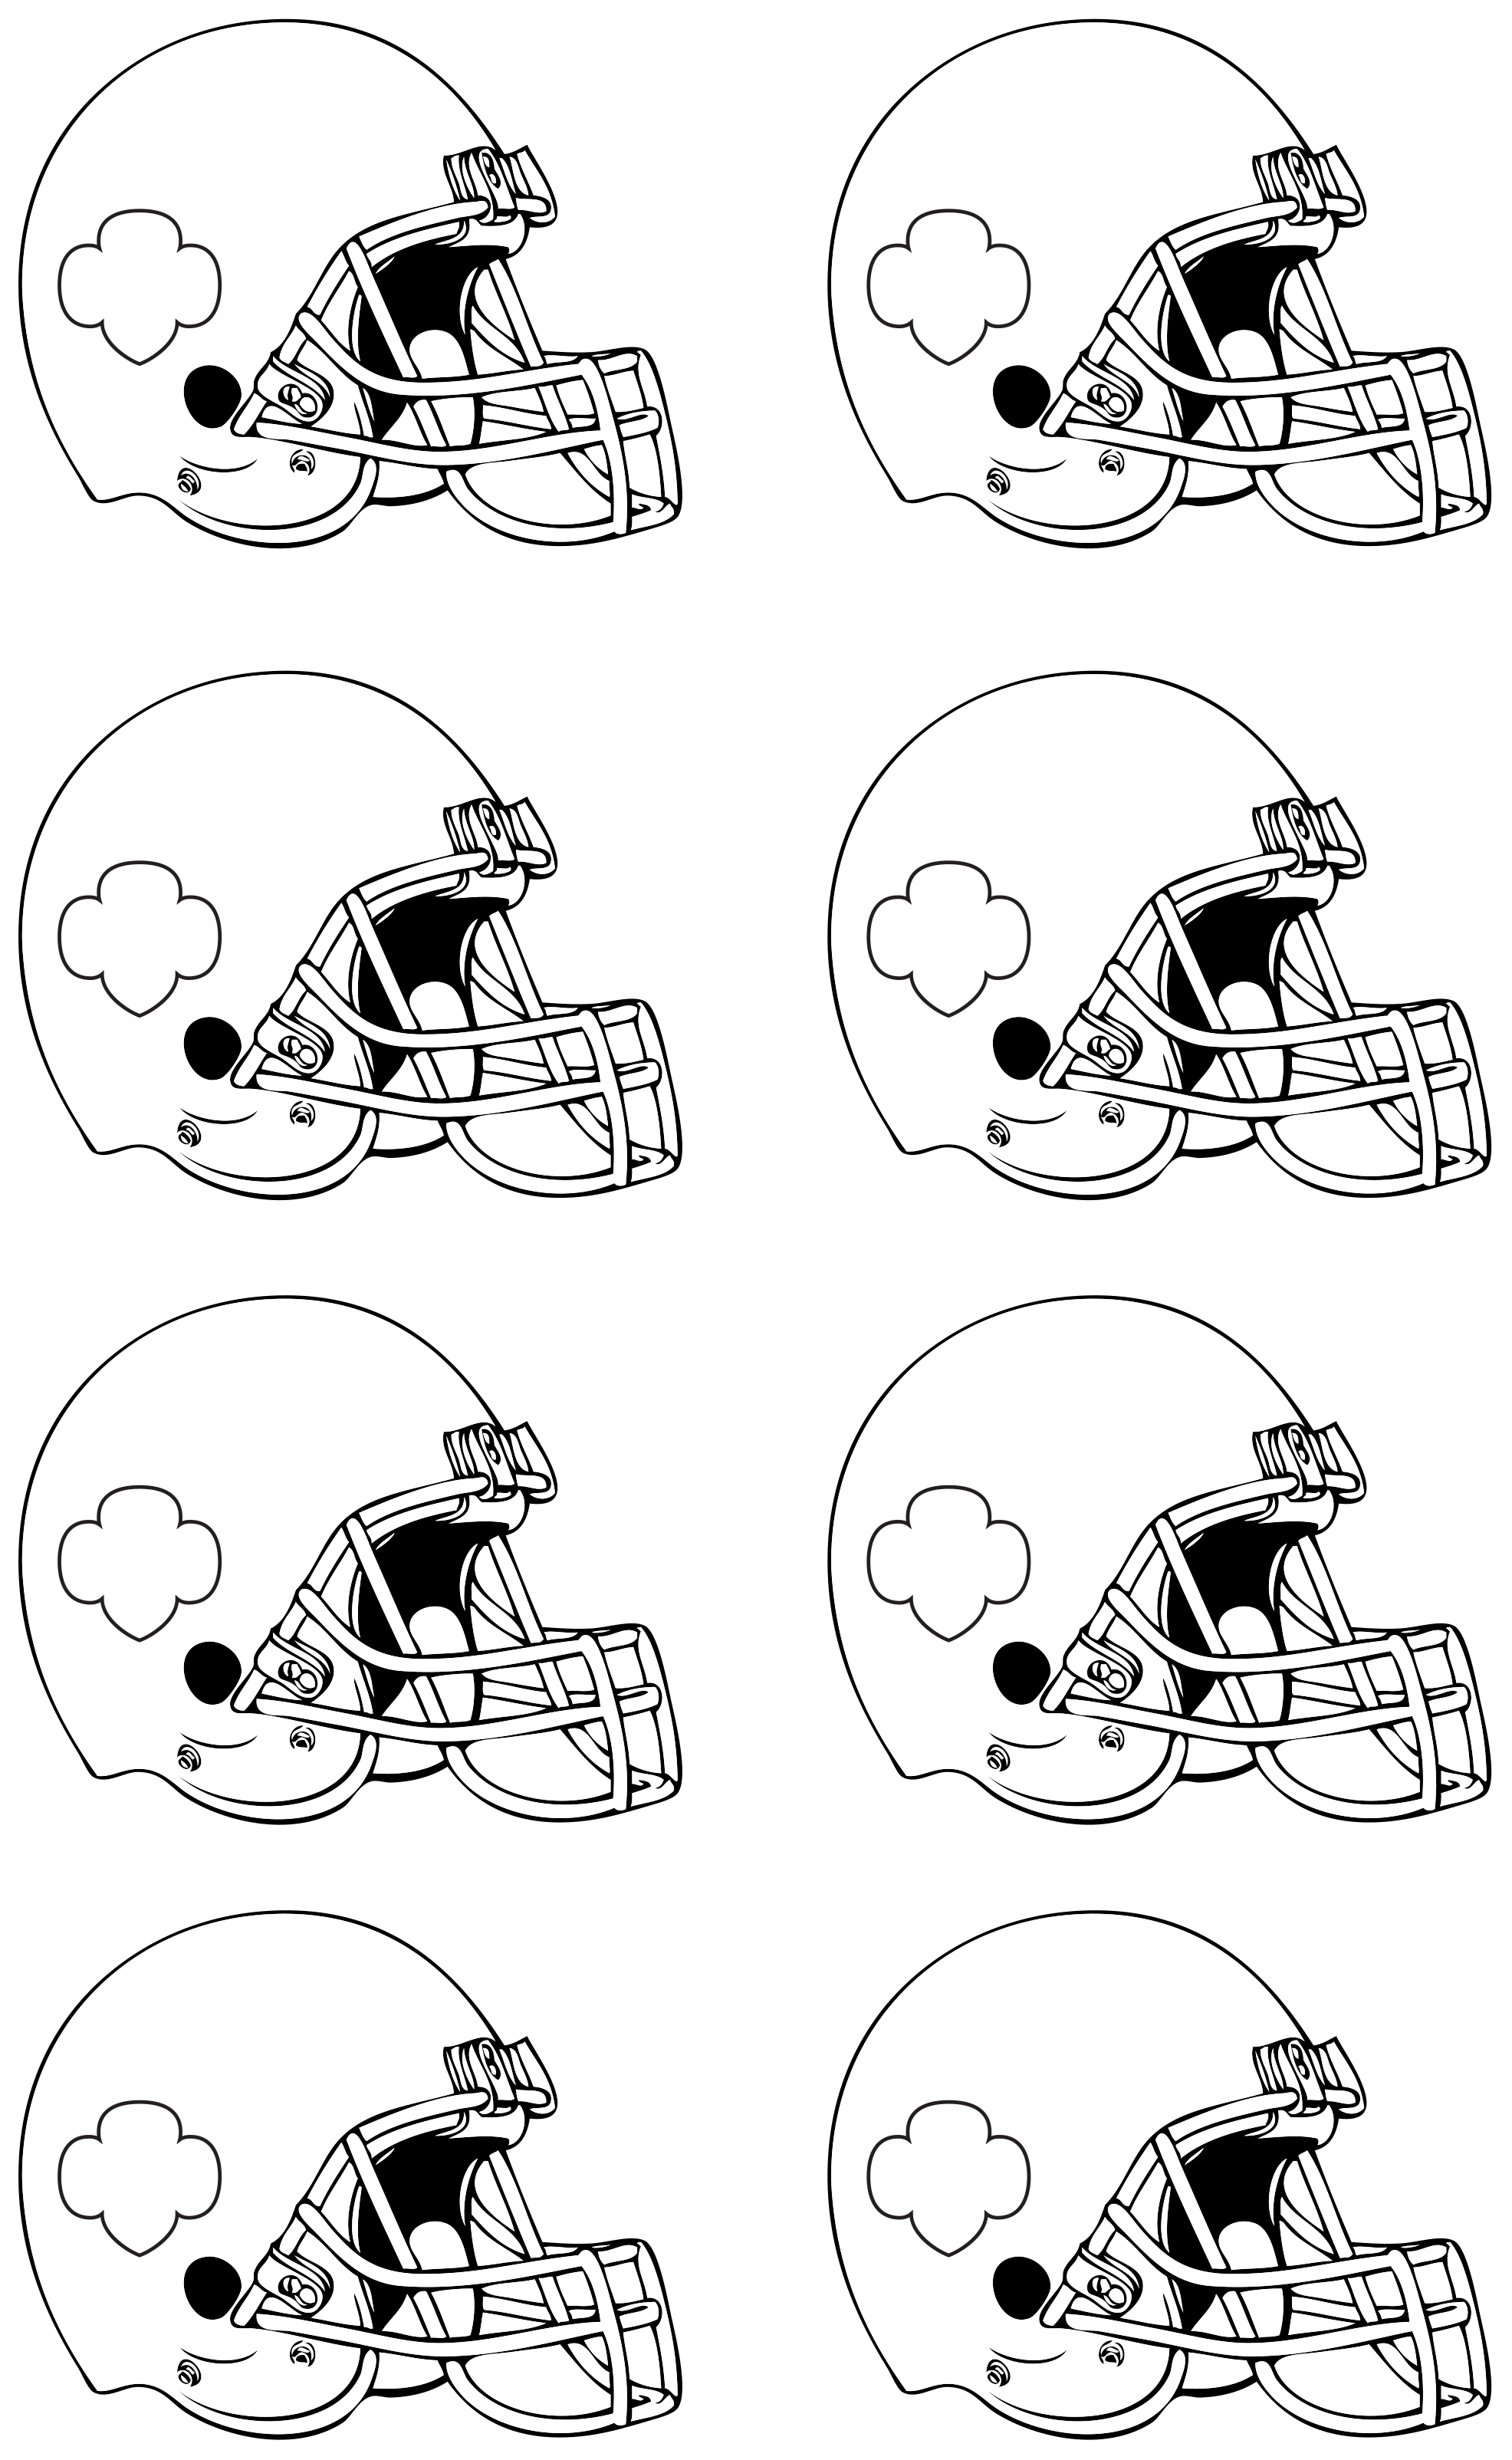 Coloring page create custom. Superbowl drawing pencil image transparent stock